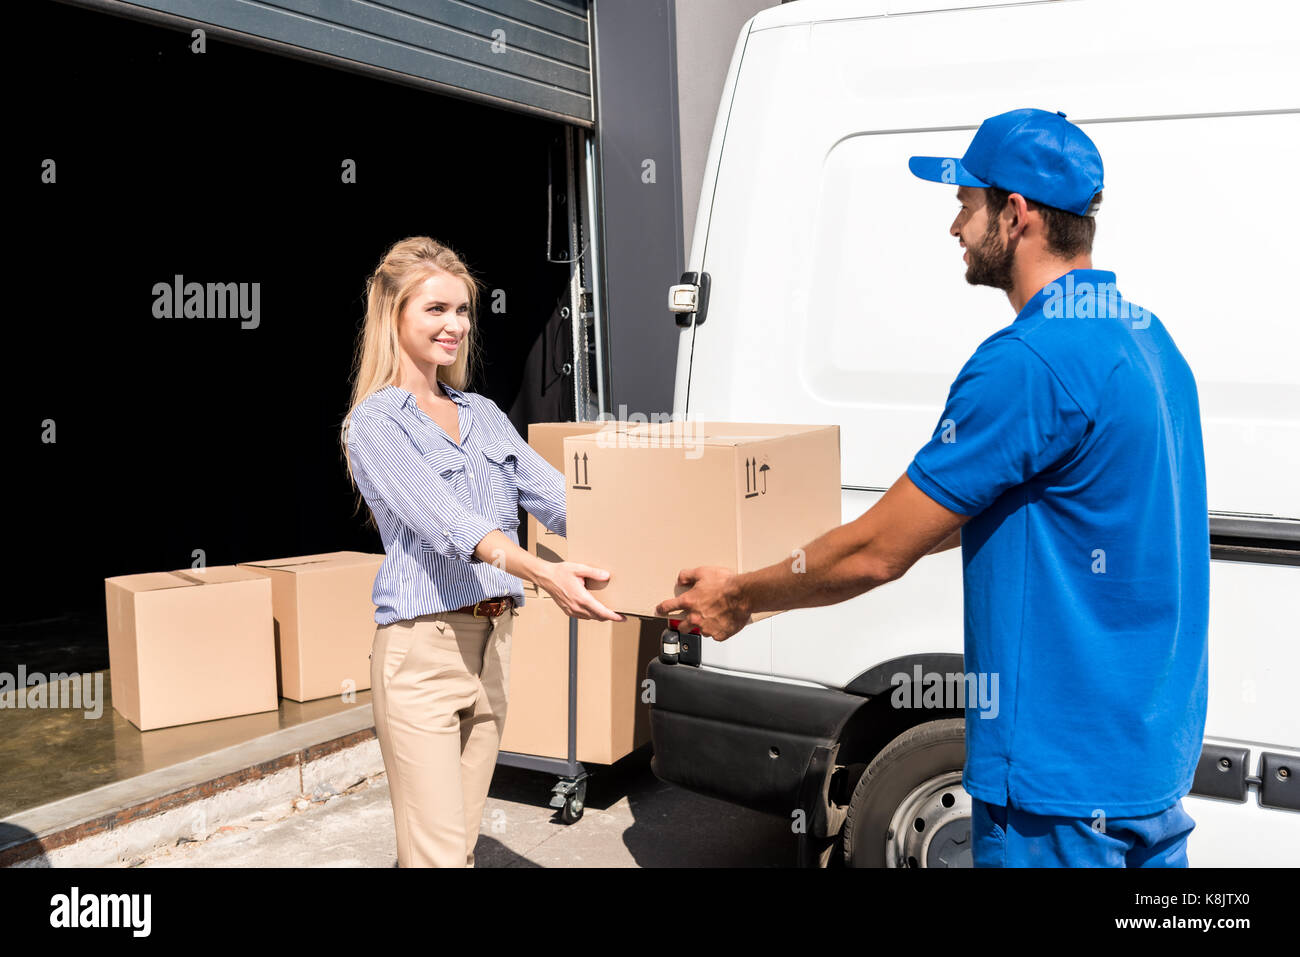 courier giving package to woman - Stock Image